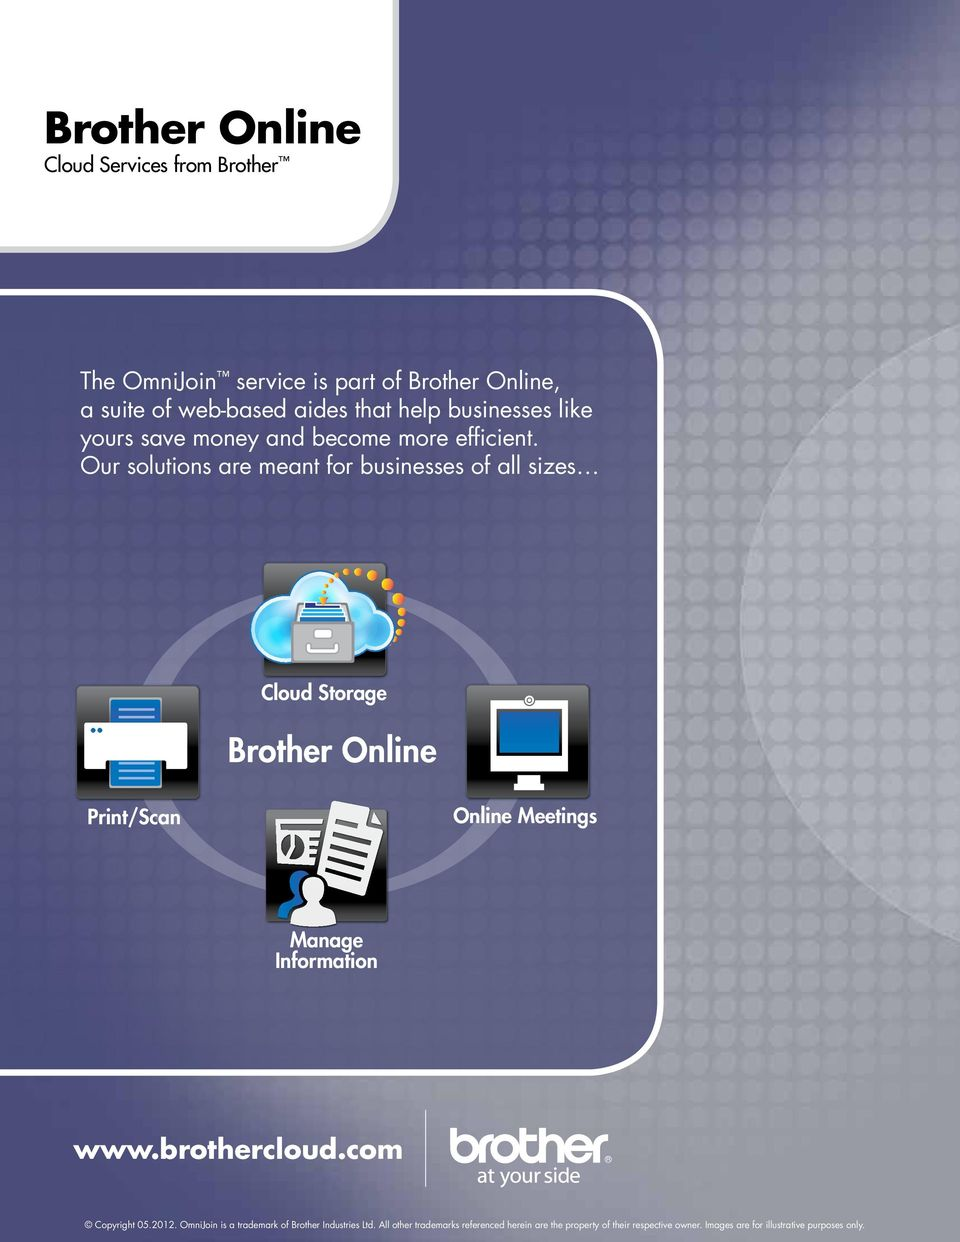 Our solutions are meant for businesses of all sizes Cloud Storage Brother Online Print/Scan Online Meetings Manage Information www.